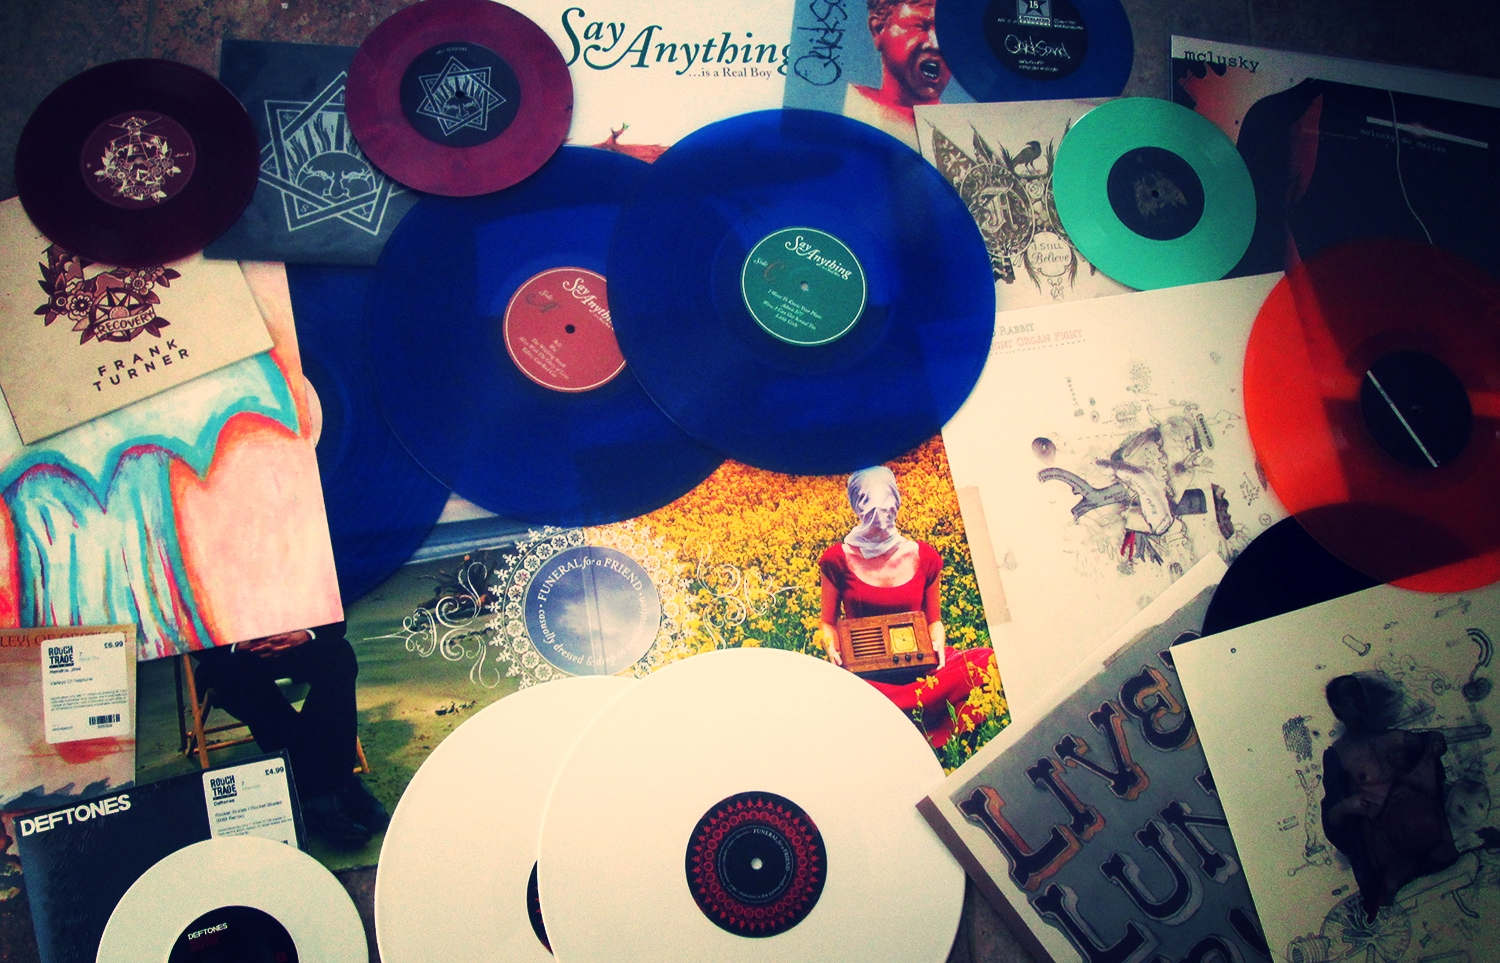 All of these are previous Record Store Day releases - how many of these have you got?